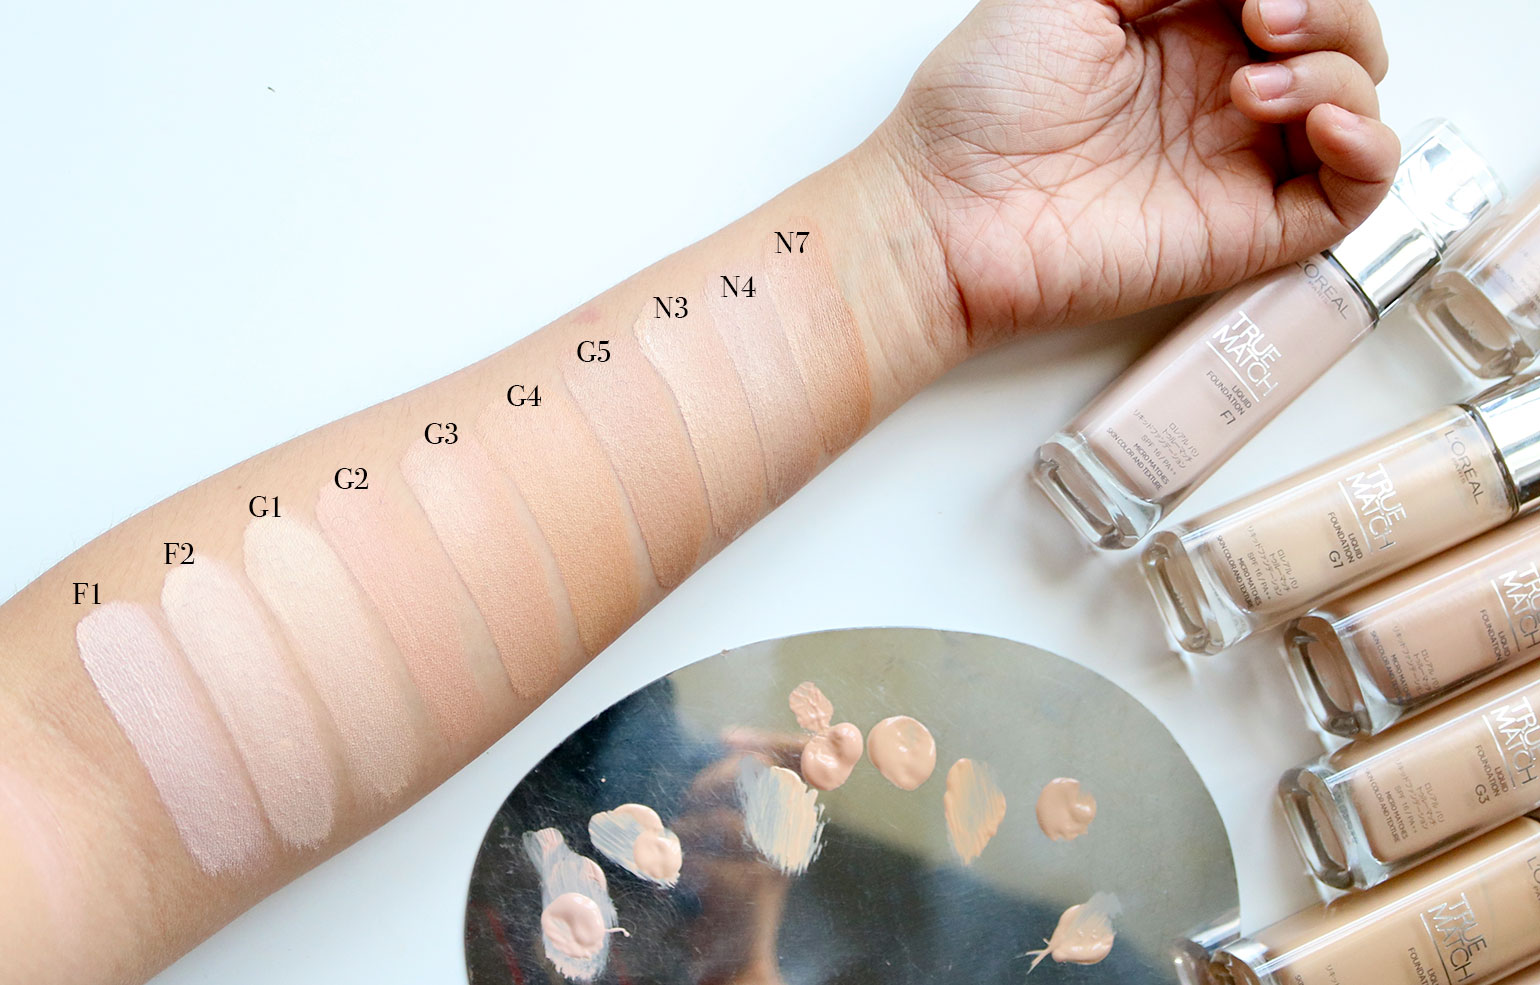 5 Loreal True Match Natural Finish Foundation Review and Swatches - She Sings Beauty by Gen-zel